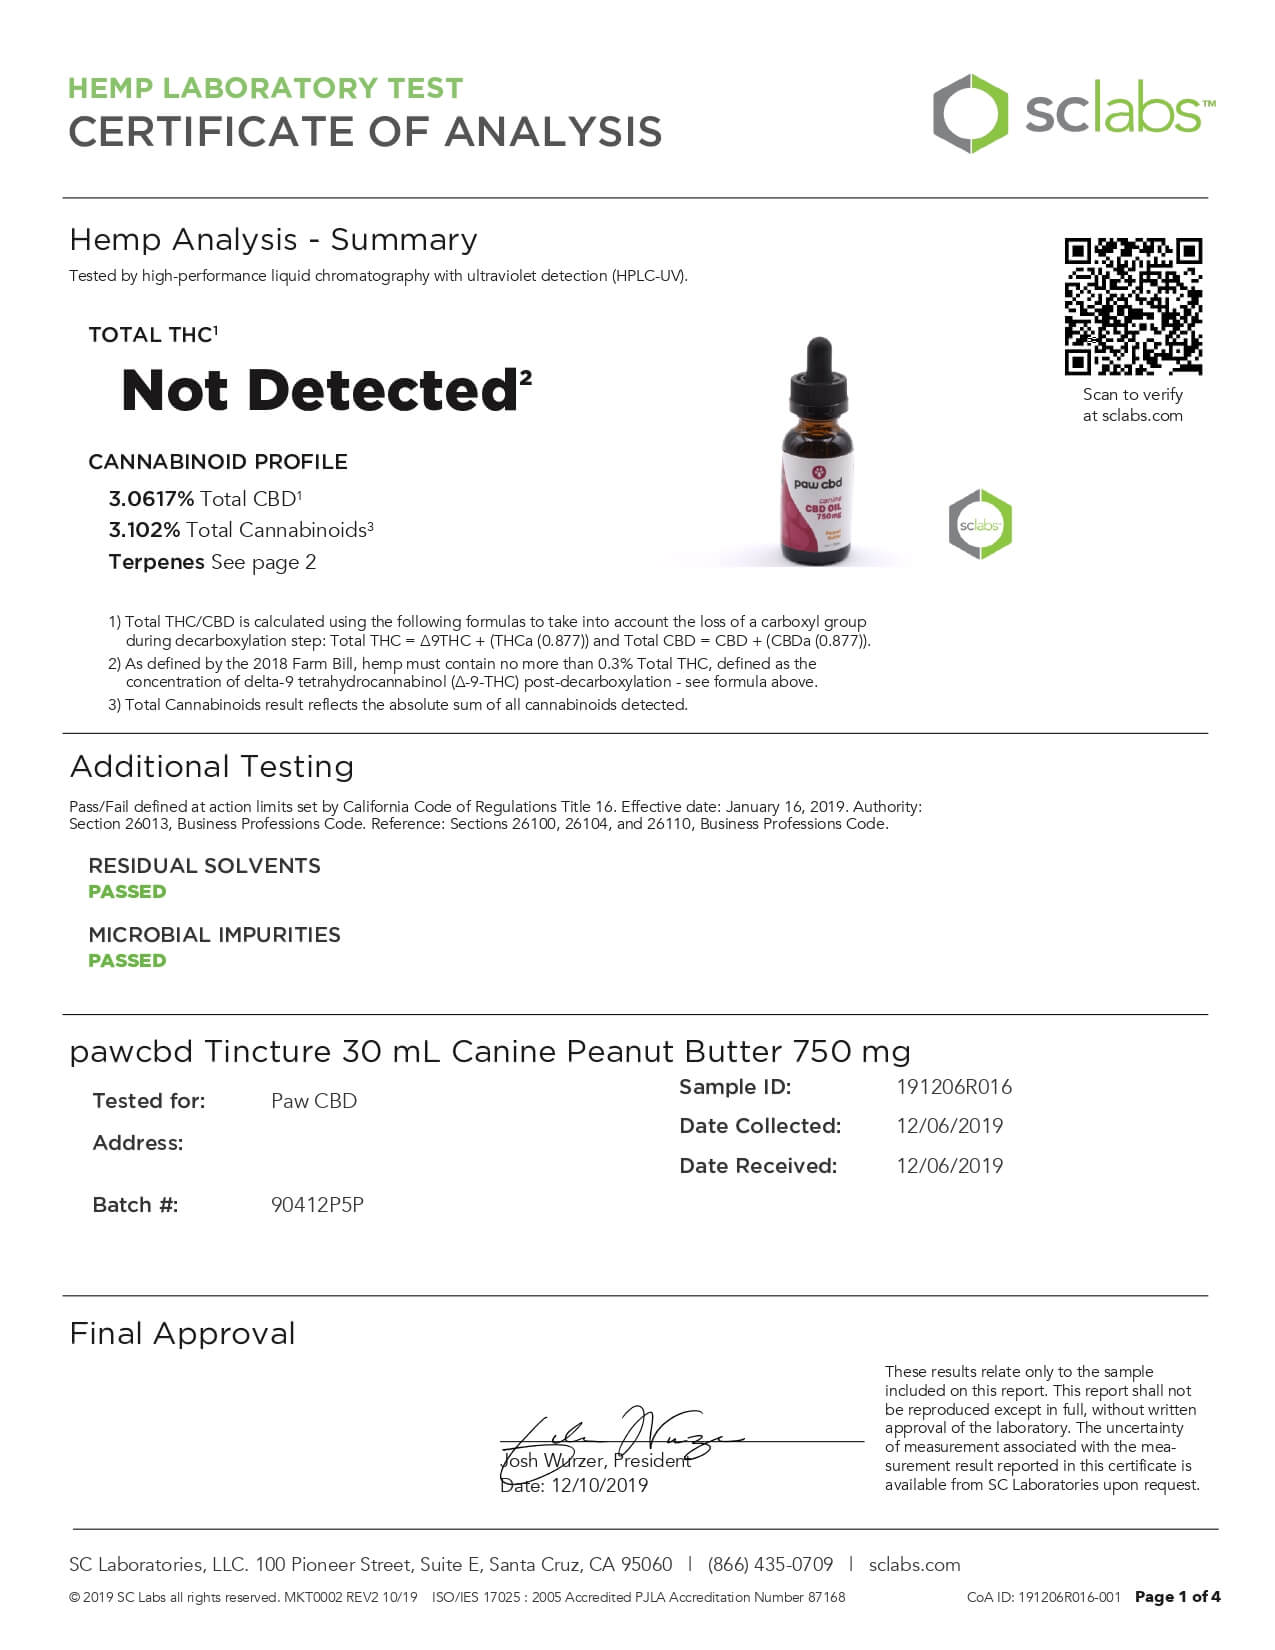 cbdMD CBD Pet Tincture Peanut Butter Flavored for Canines 750mg Lab Report